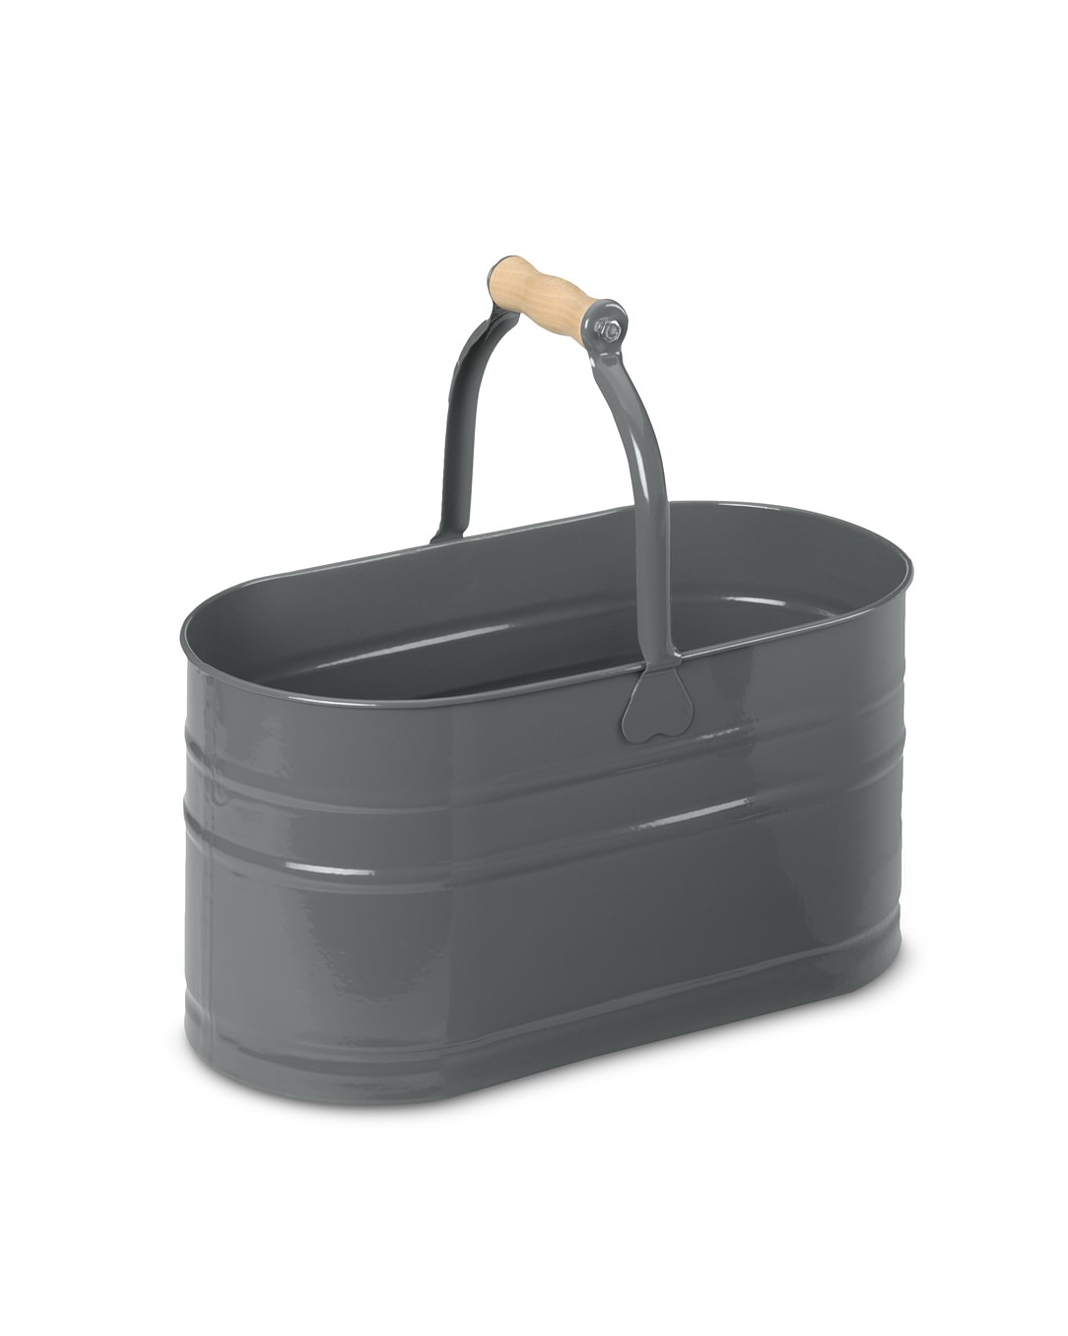 blueprint-team-cleaning-registry-oval-cleaning-pail-1015.jpg